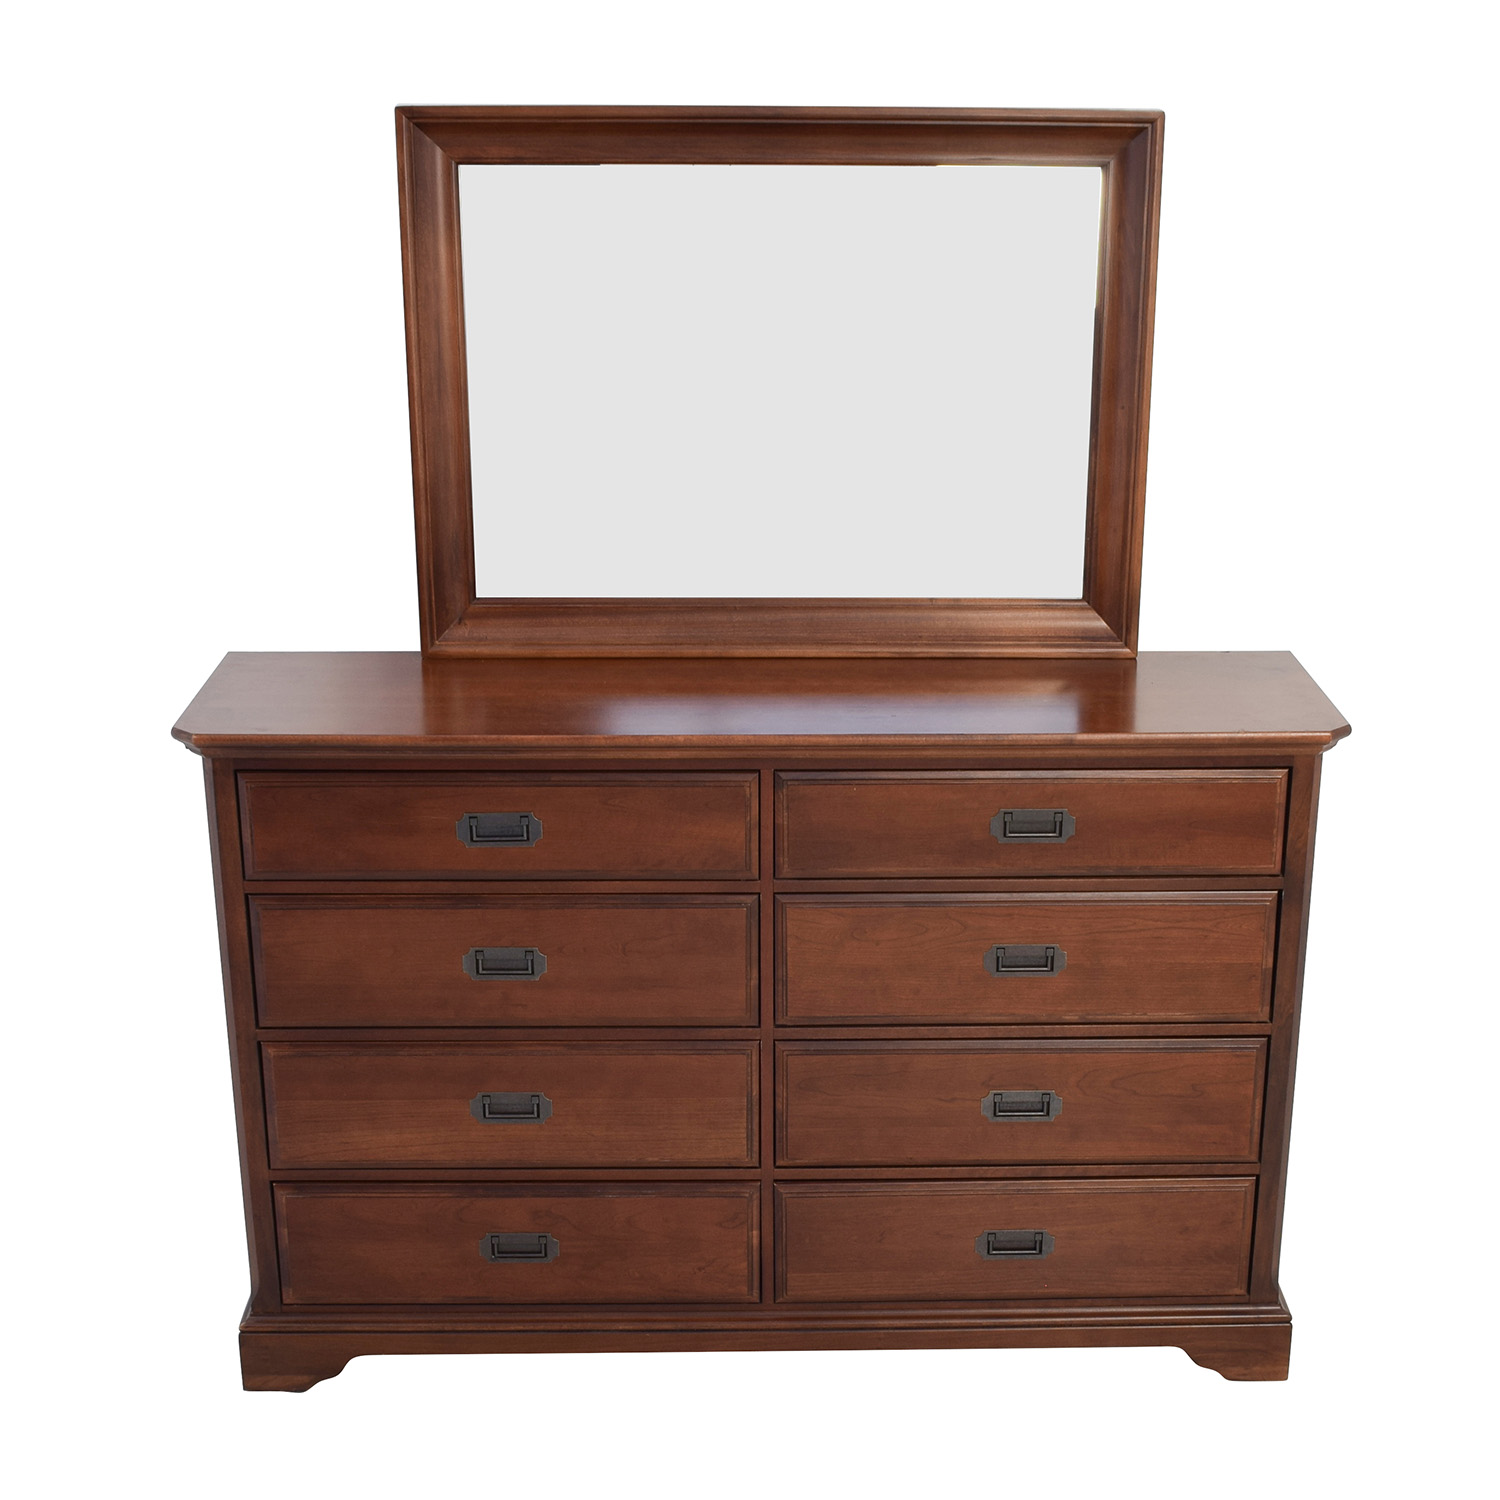 buy Vaughan Bassett Hardwood Dresser with Mirror